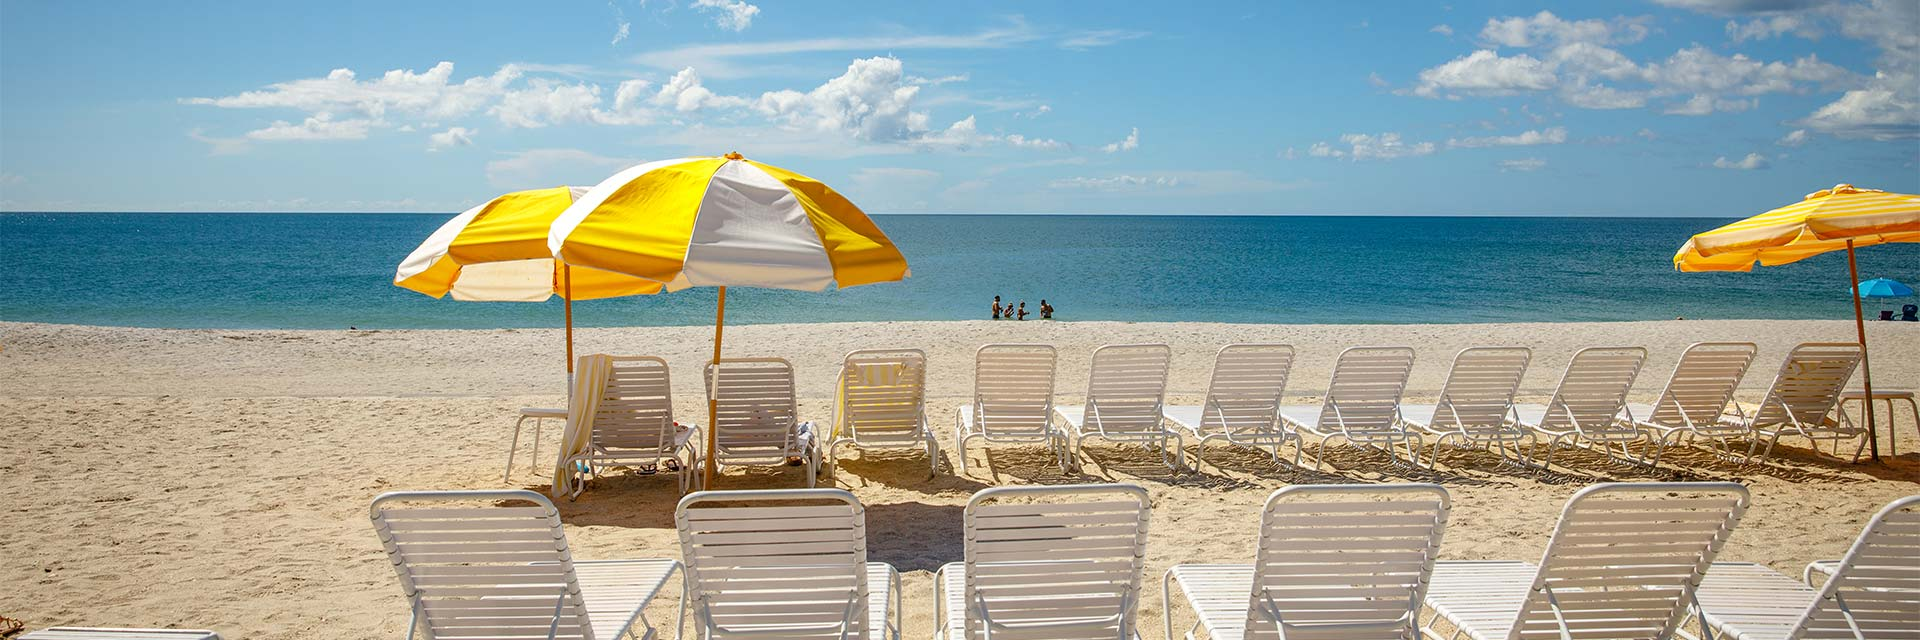 beach with yellow umbrellas and chairs at Gasparilla Inn Beach Club